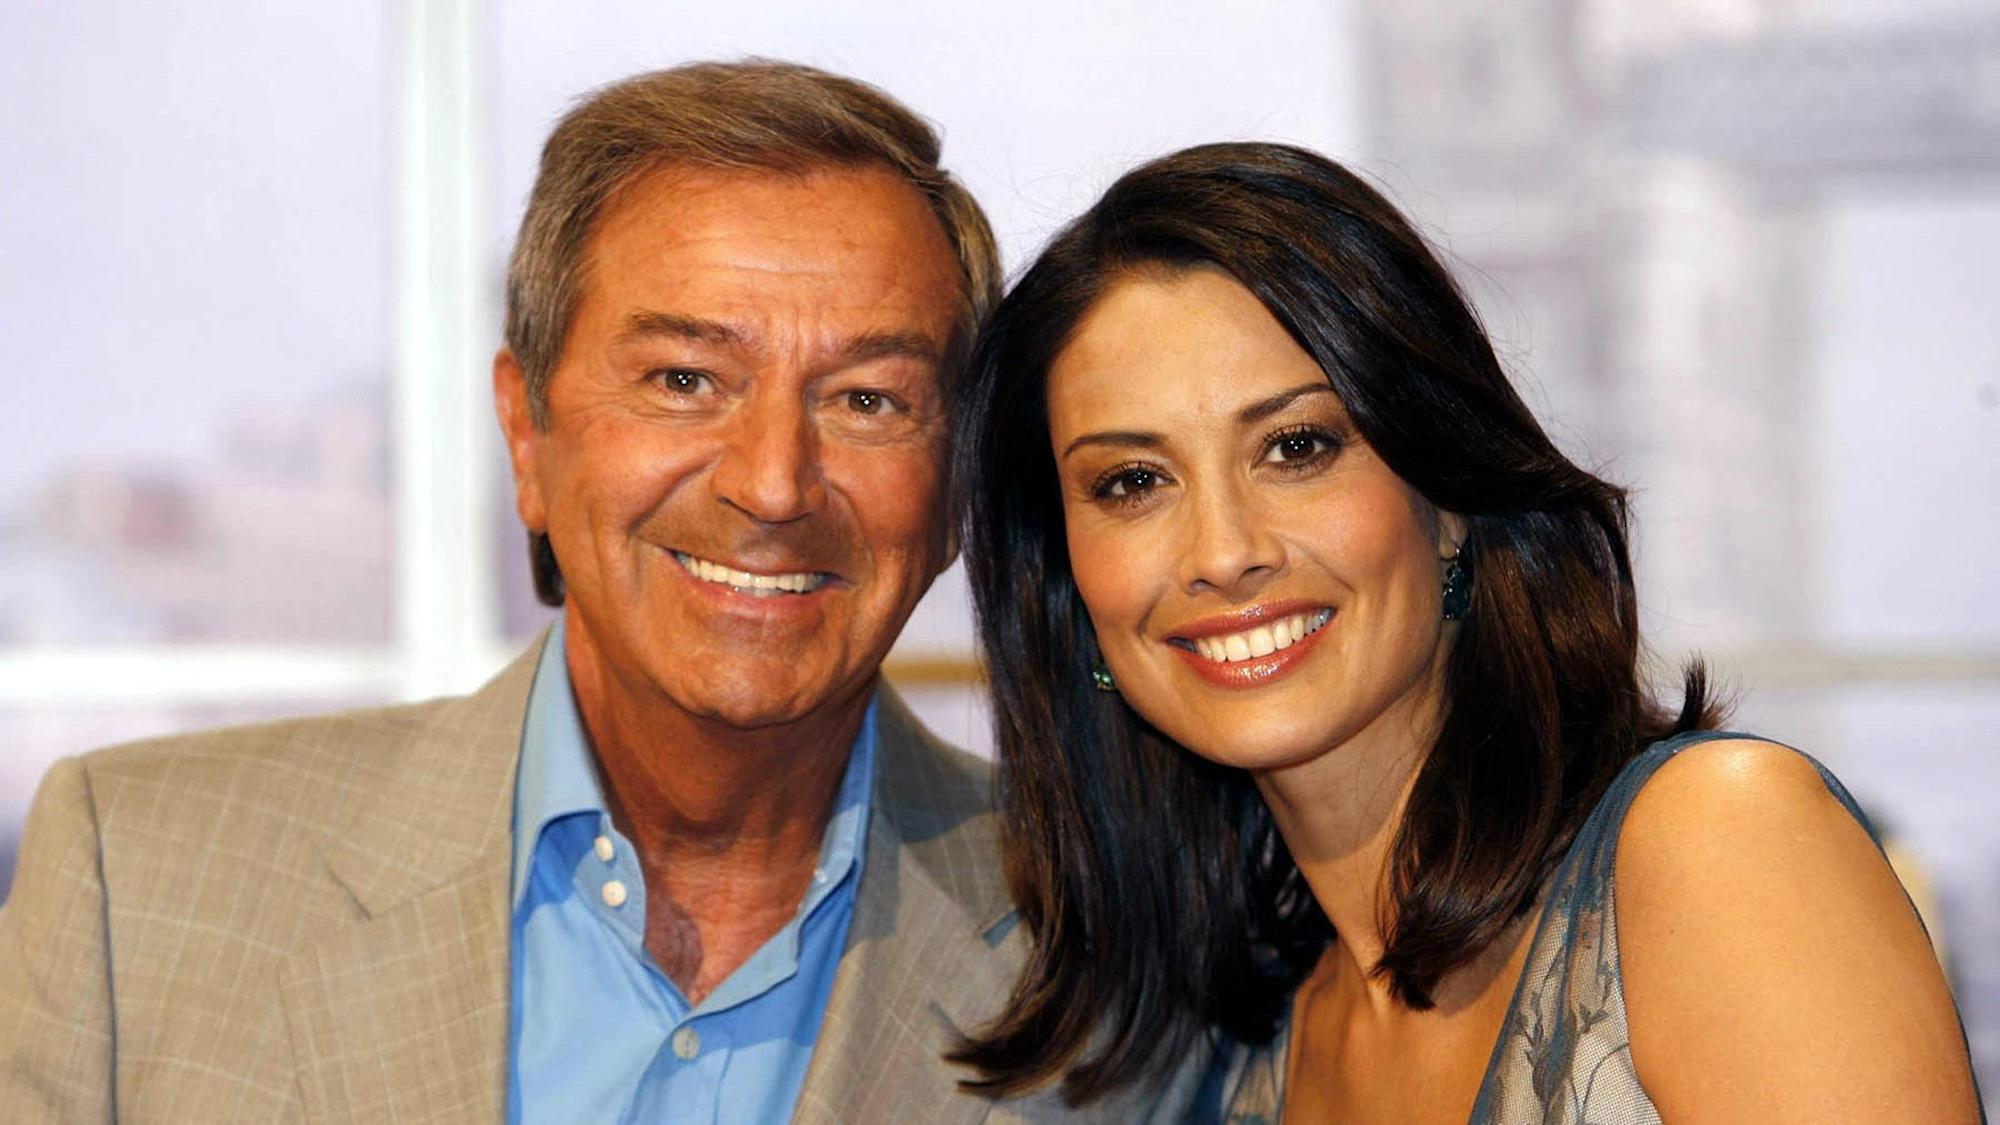 Melanie Sykes and Carol Vorderman lead tributes to Des O'Connor